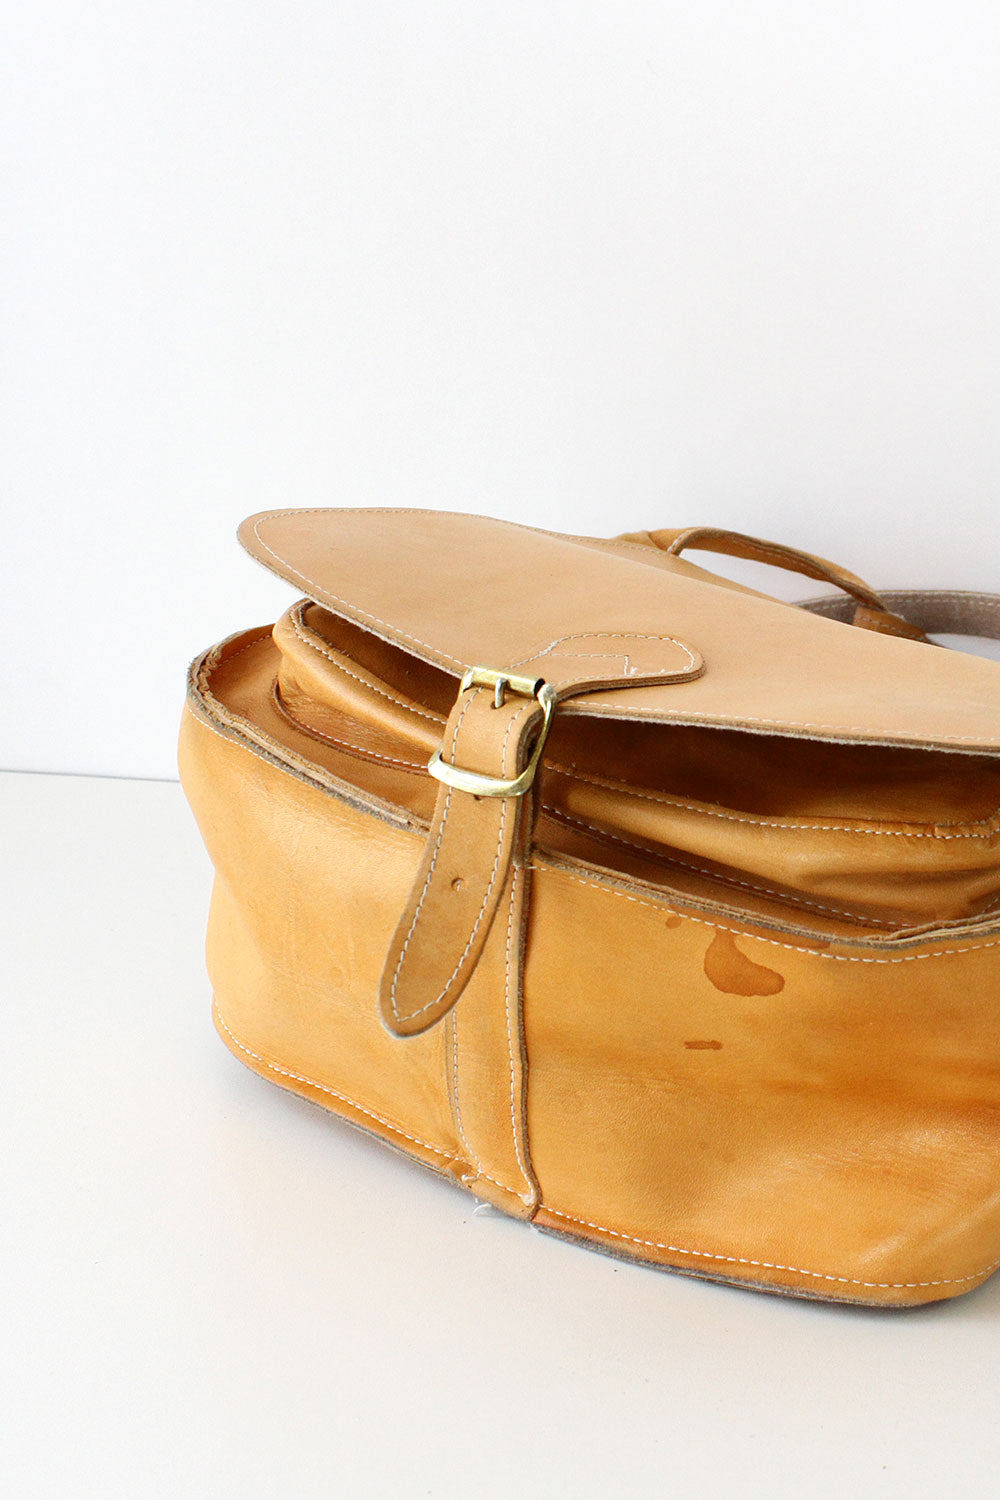 Blonde Saddle Bag